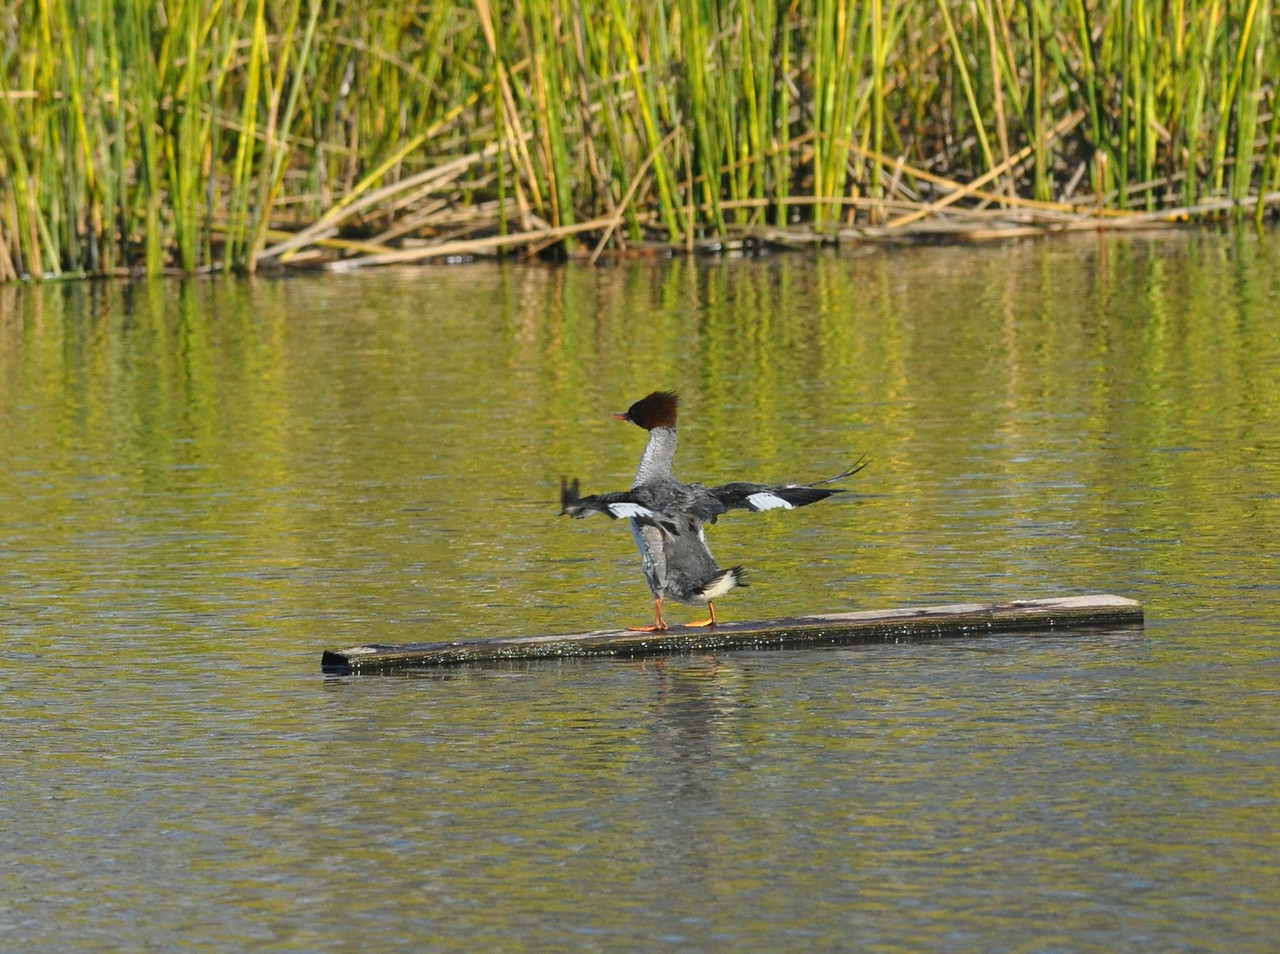 Stretching and flapping its wings.  I was rather far away for this lens but I did get some shots of the merganser.  <br /> <br /> Bits are cheap. Take the picture and worry about perfection later.